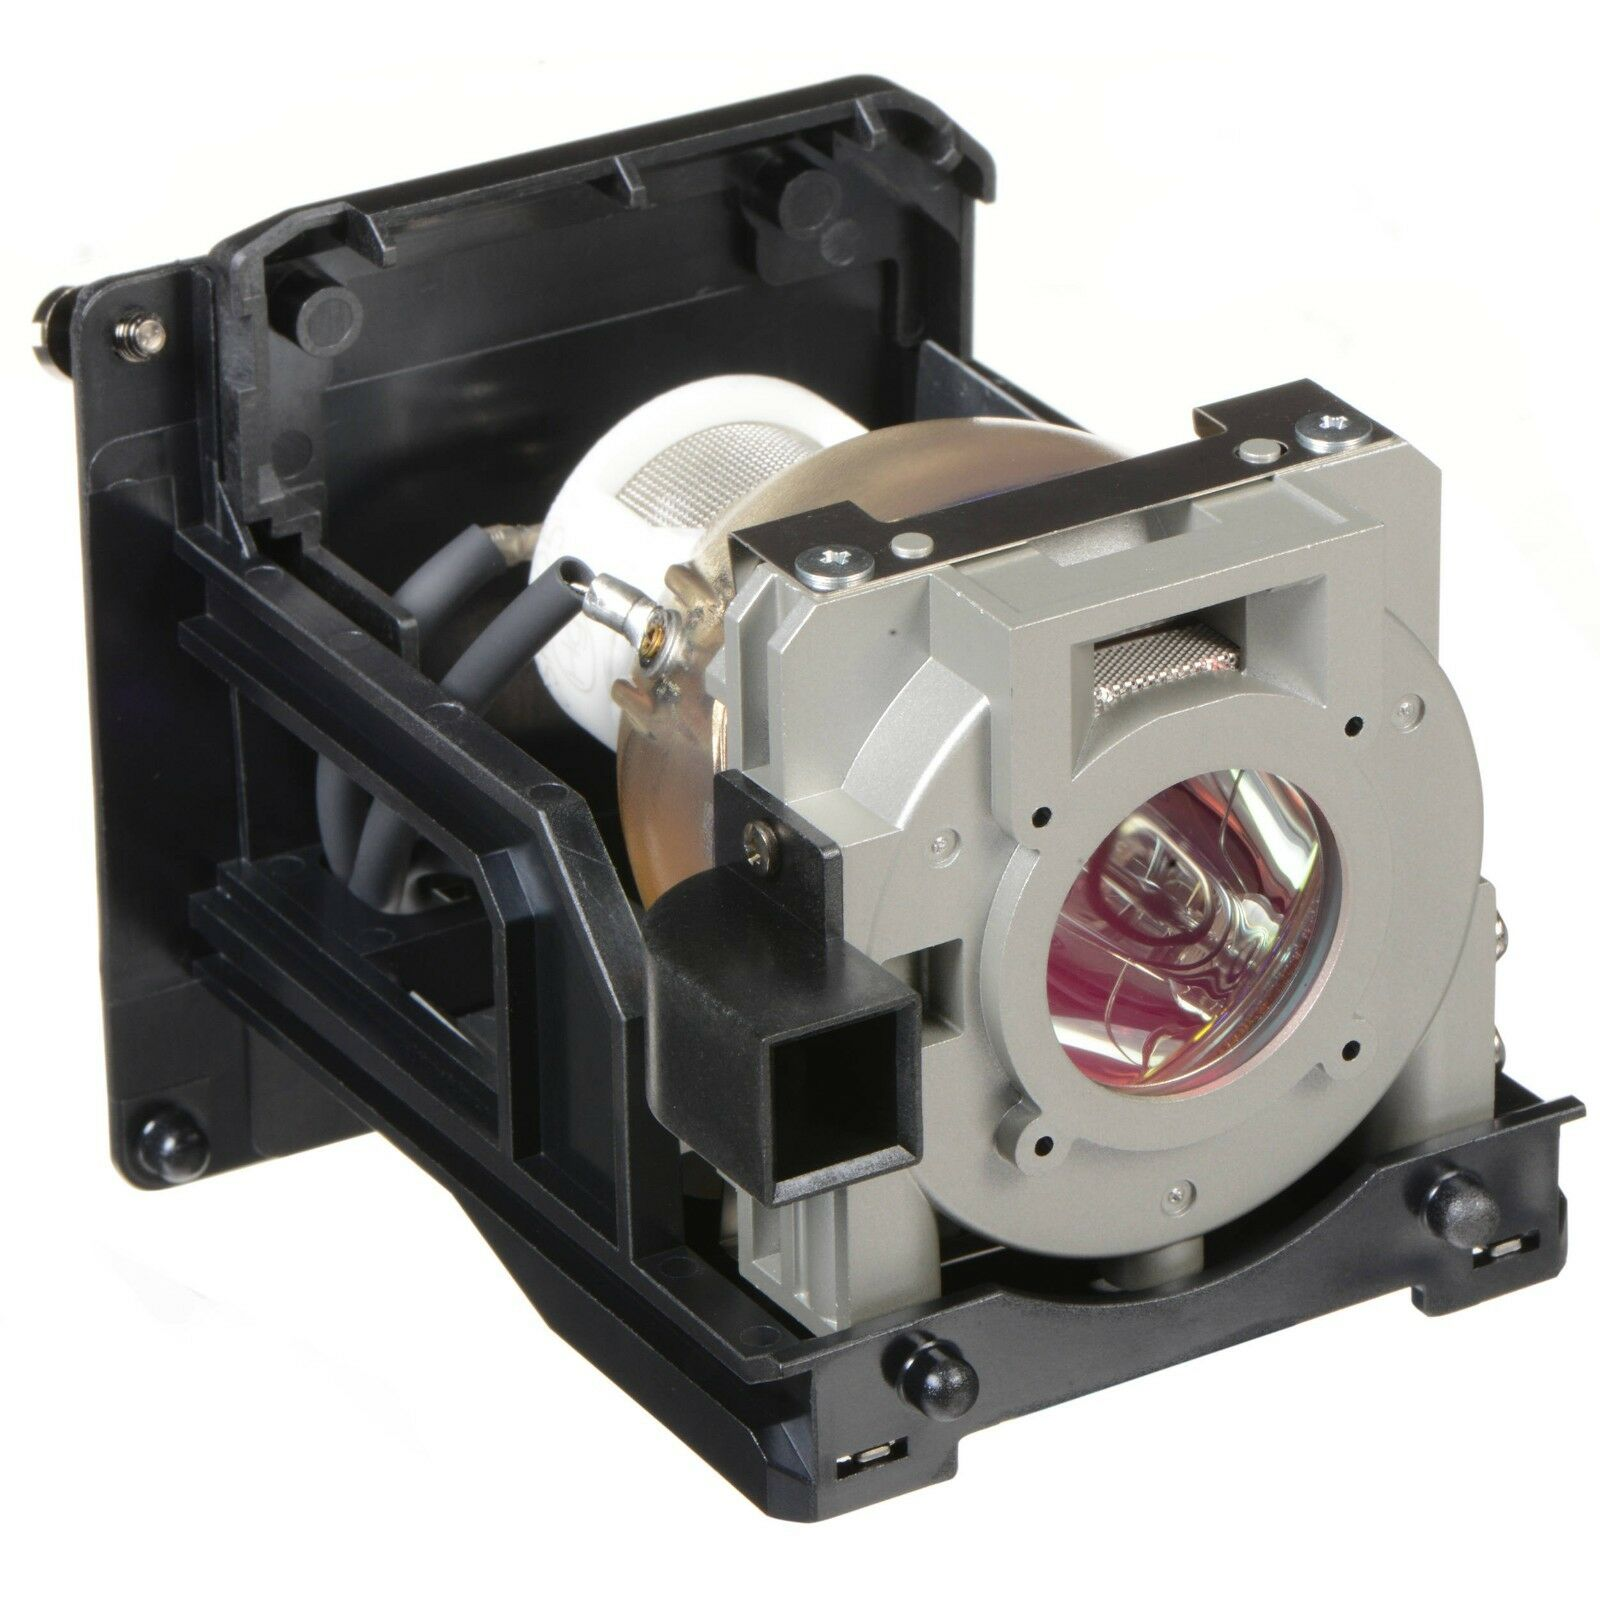 XpertMall Replacement Lamp Housing NEC PX800X Philips Bulb Inside